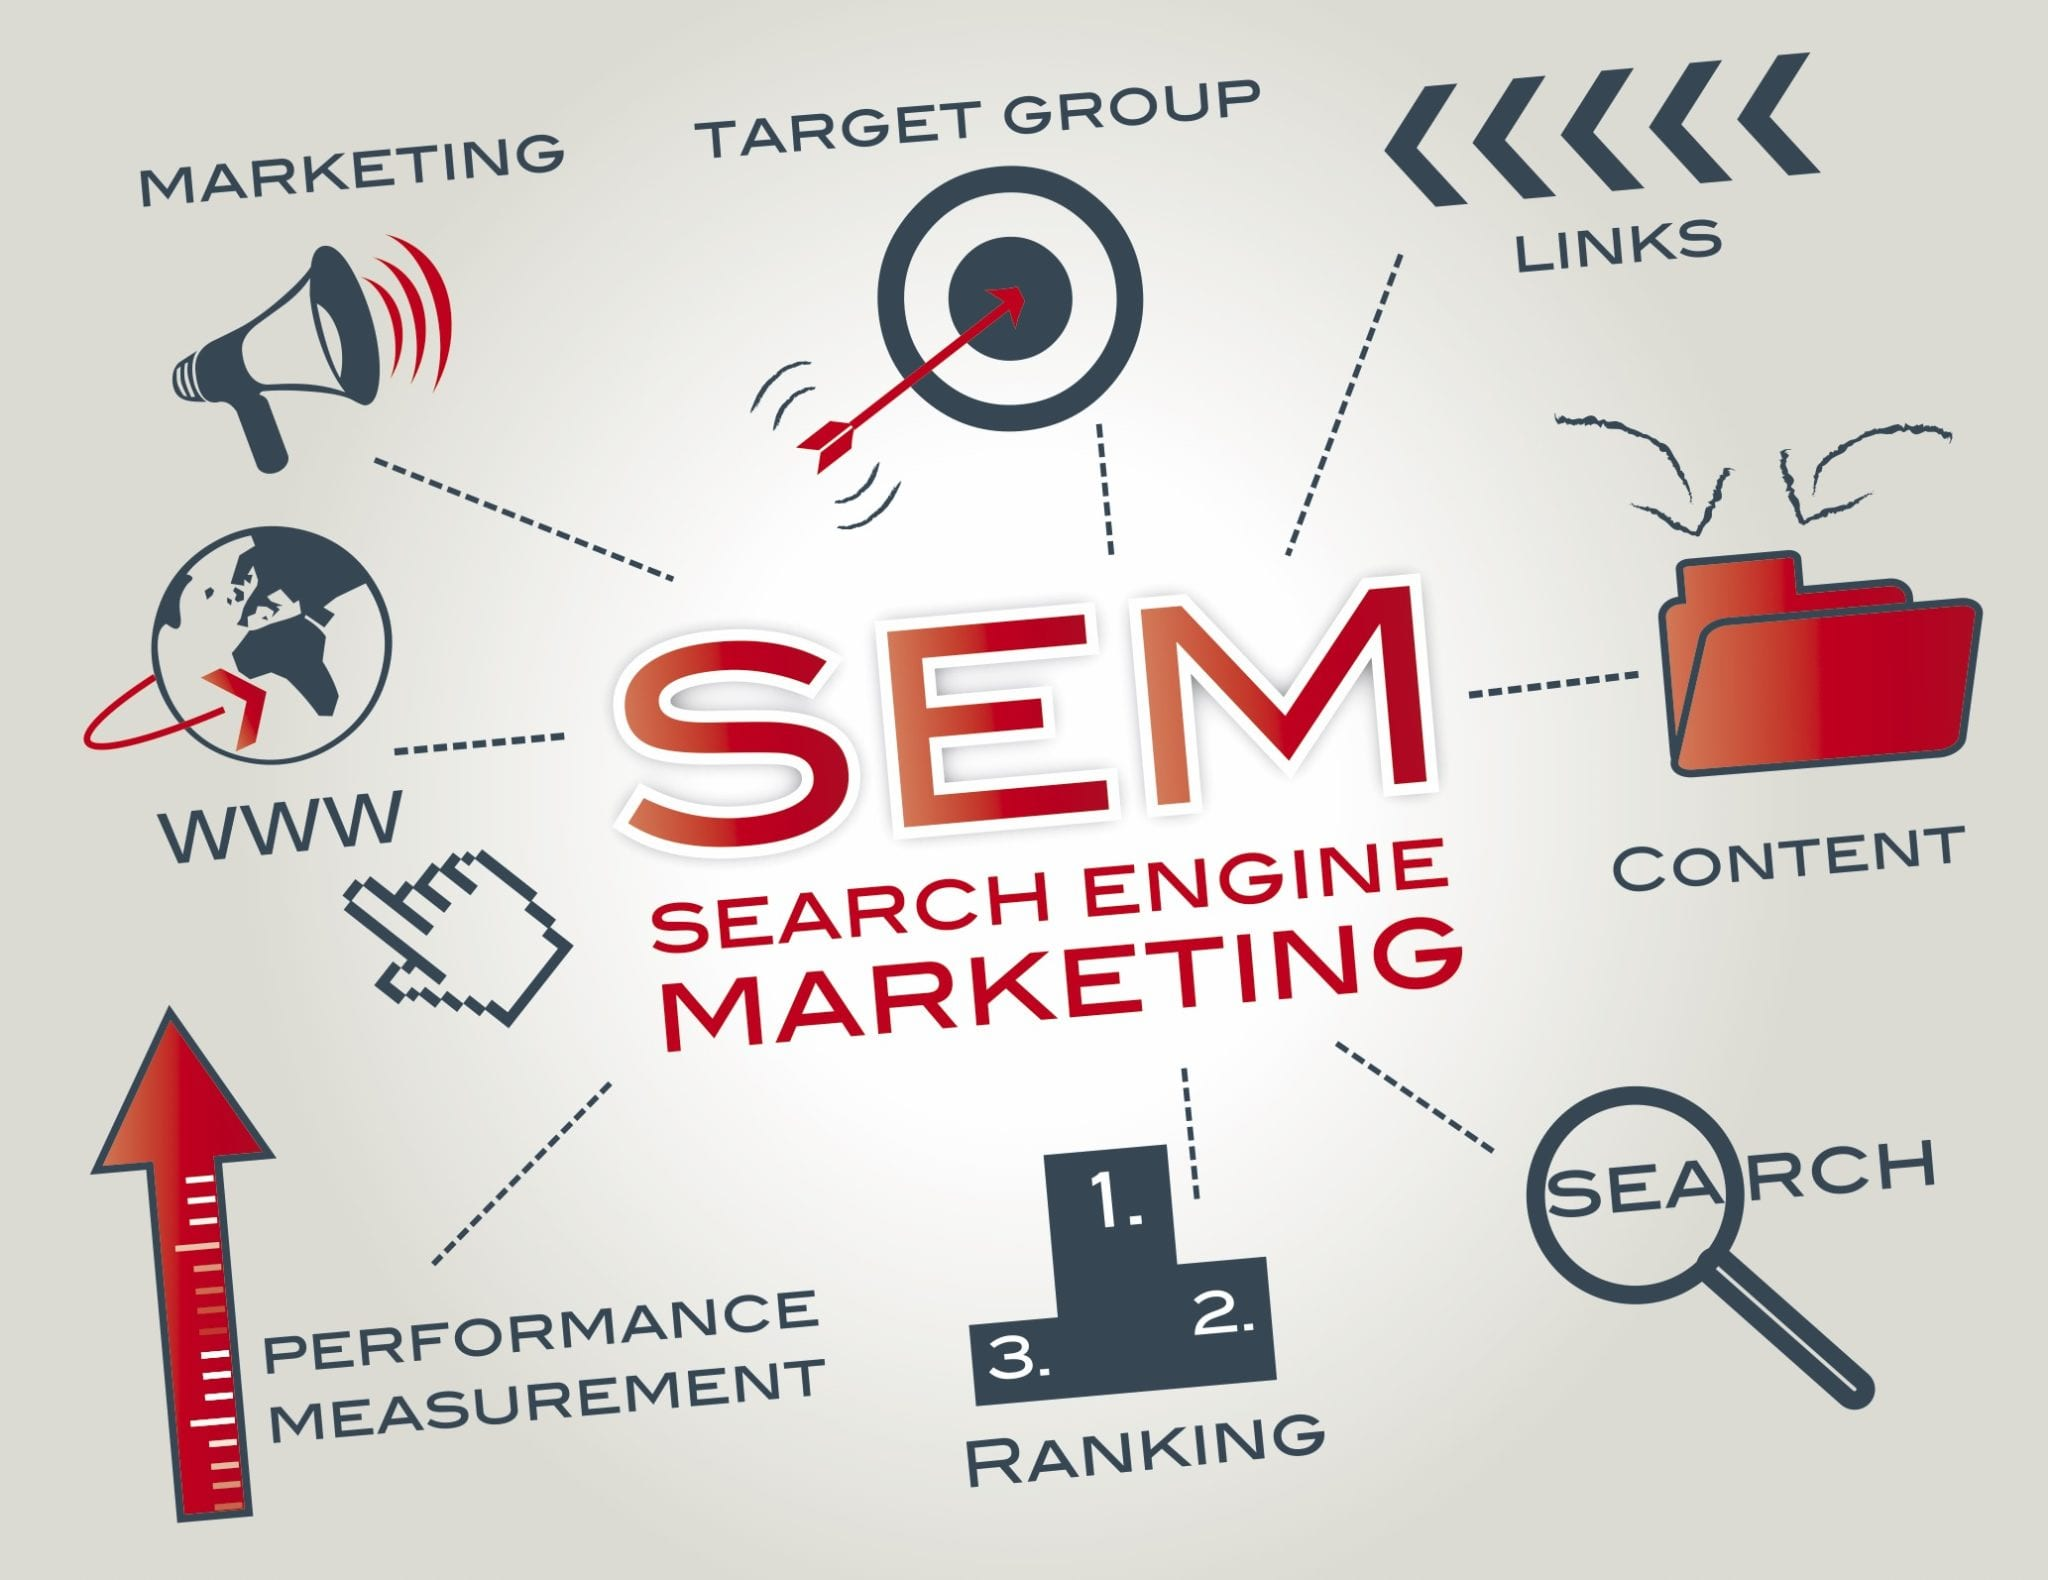 SEARCH ENGINE MARKETING (SEM)